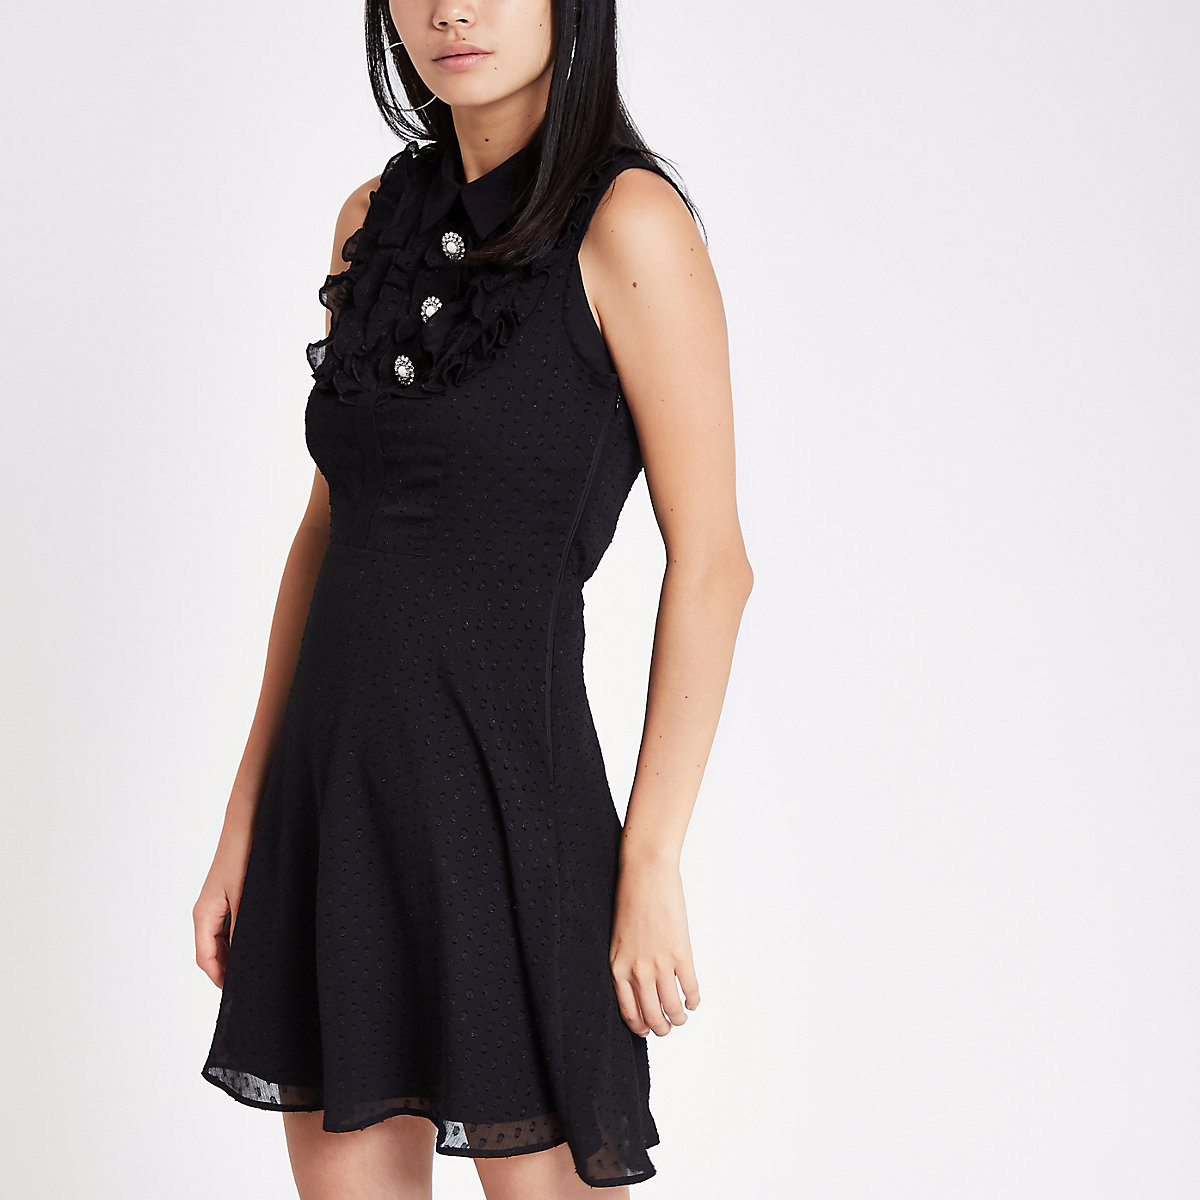 Black rhinestone button occasion mini dress